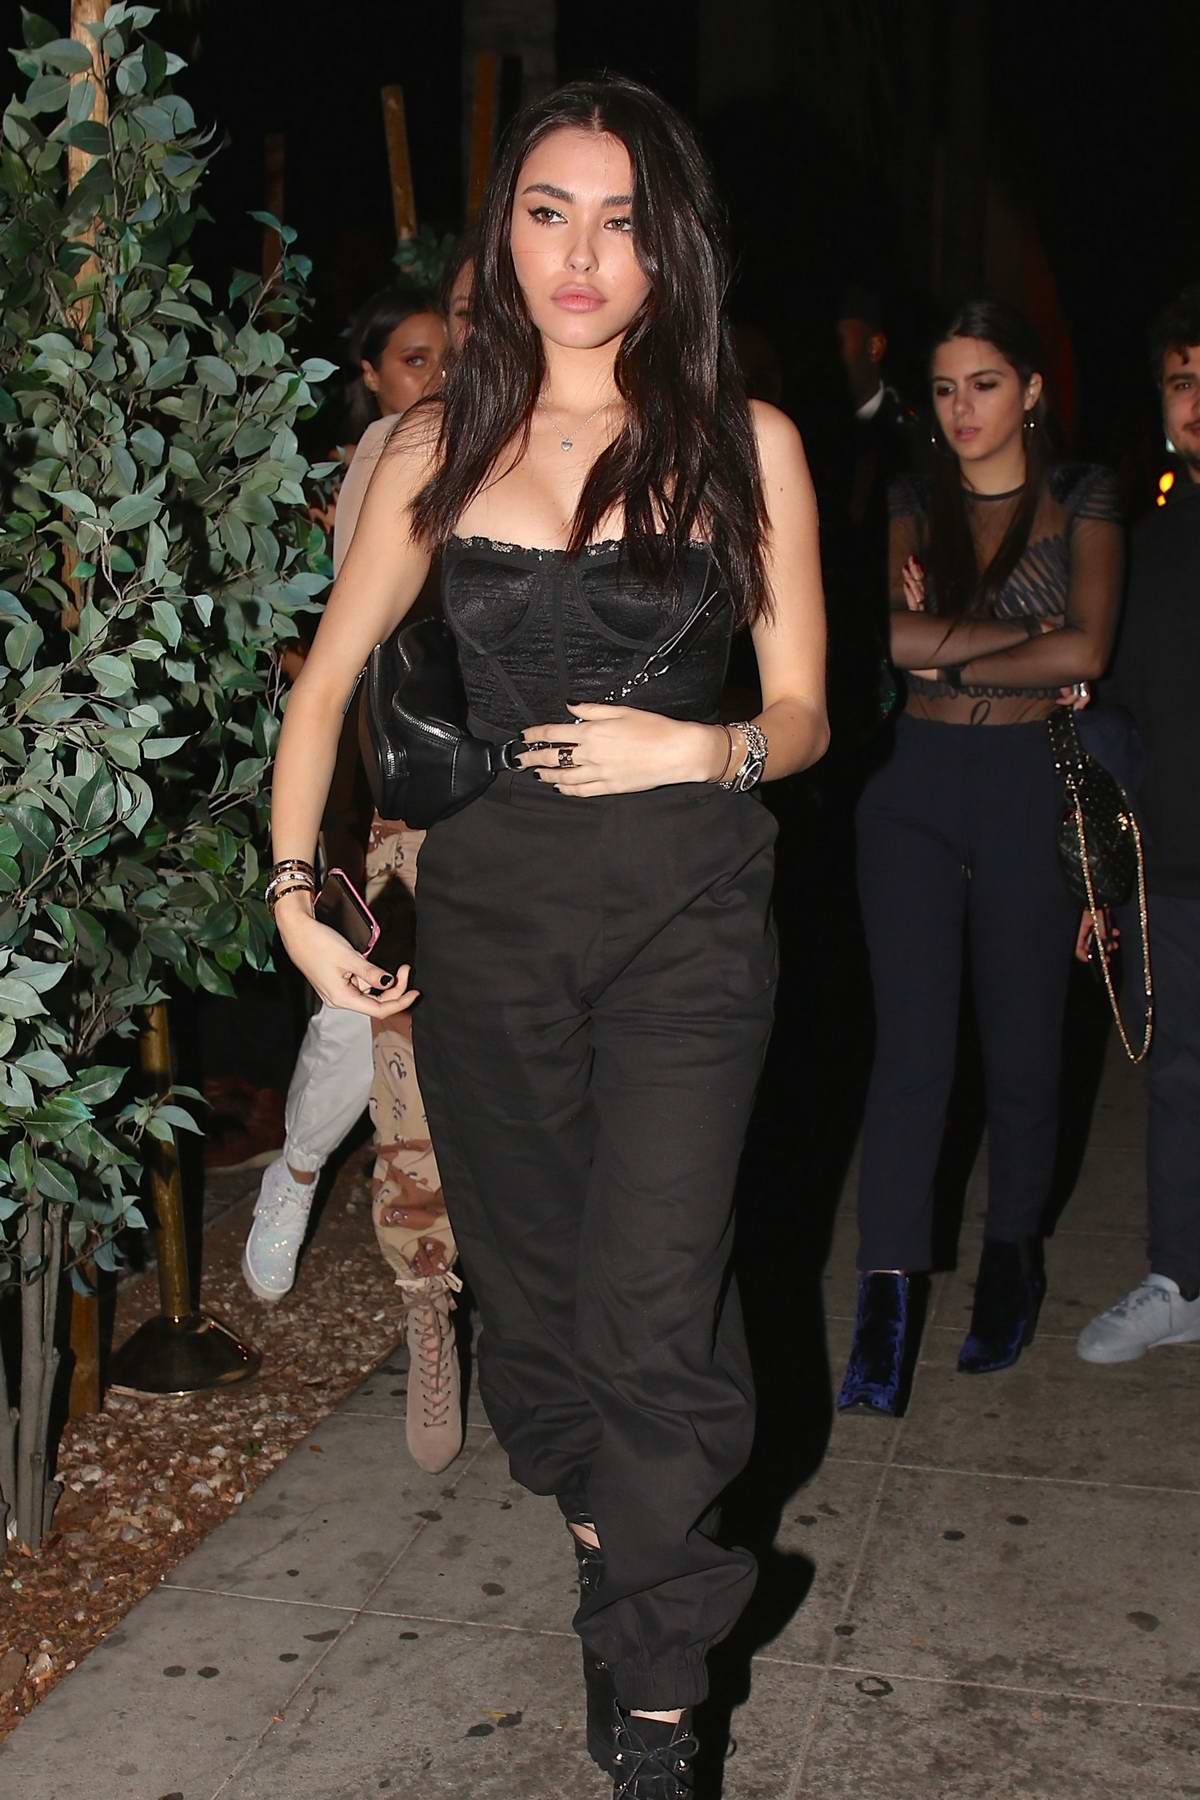 Madison Beer wears all black while on a night out with friends at Delilah in West Hollywood, Los Angeles